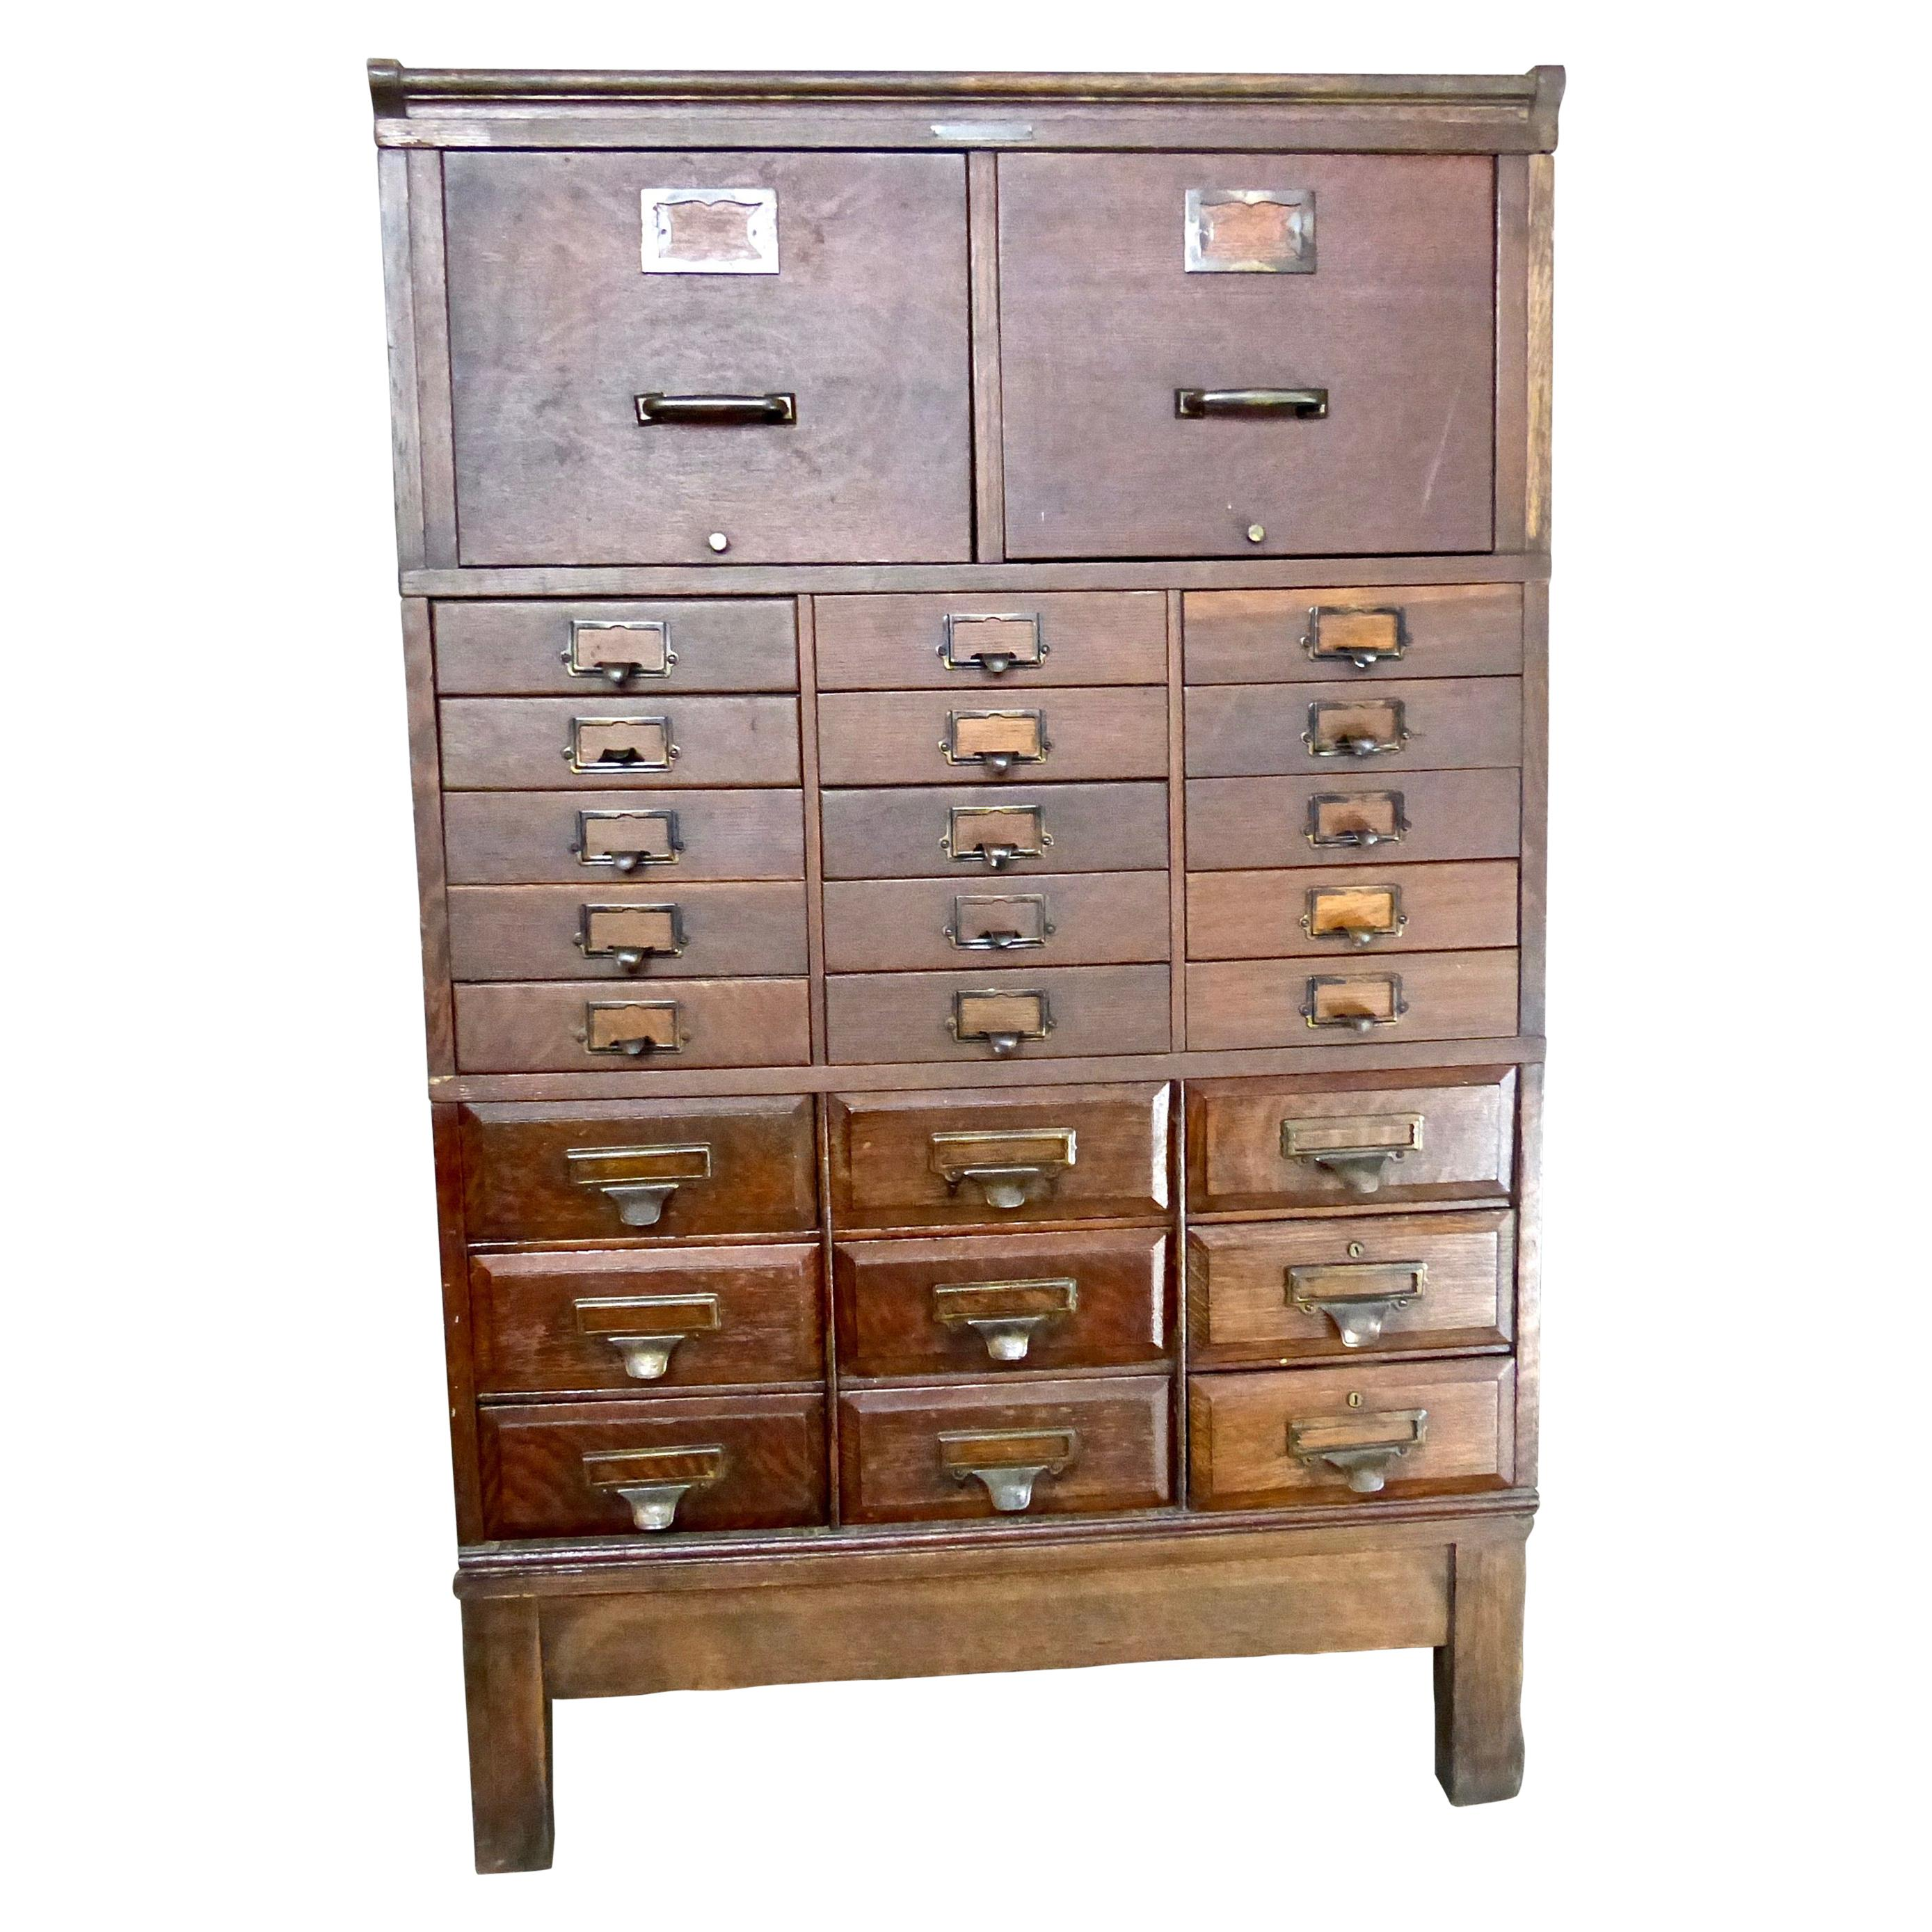 1920s Oak Apothecary Cabinet The Office Specialty Co  Newmarket Ontario